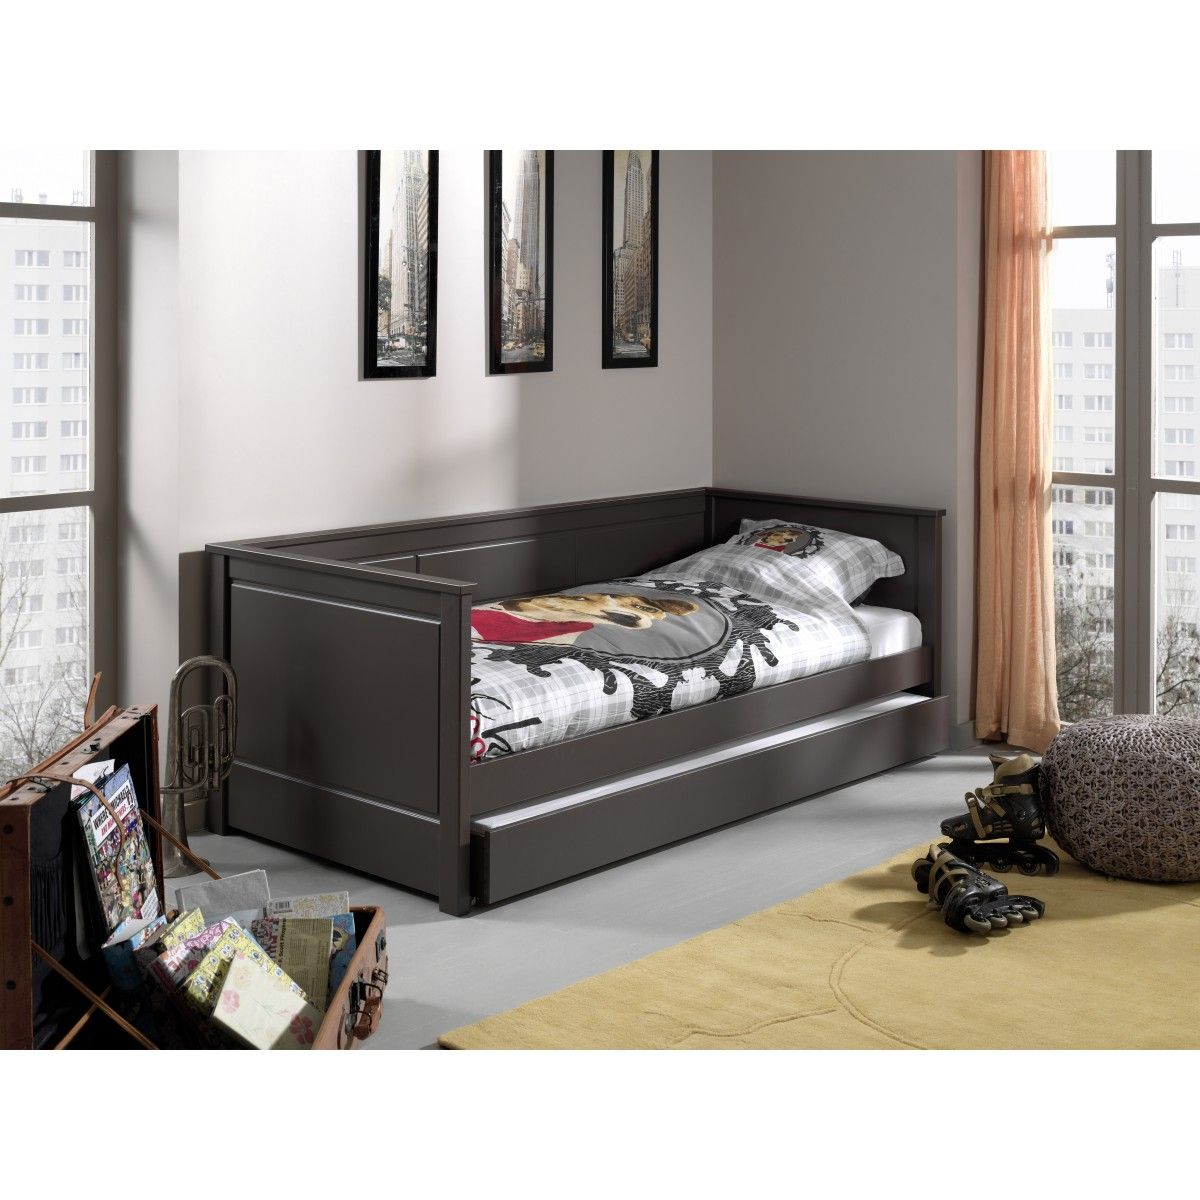 terre soldes lit enfant canap bois massif taupe tiroir. Black Bedroom Furniture Sets. Home Design Ideas